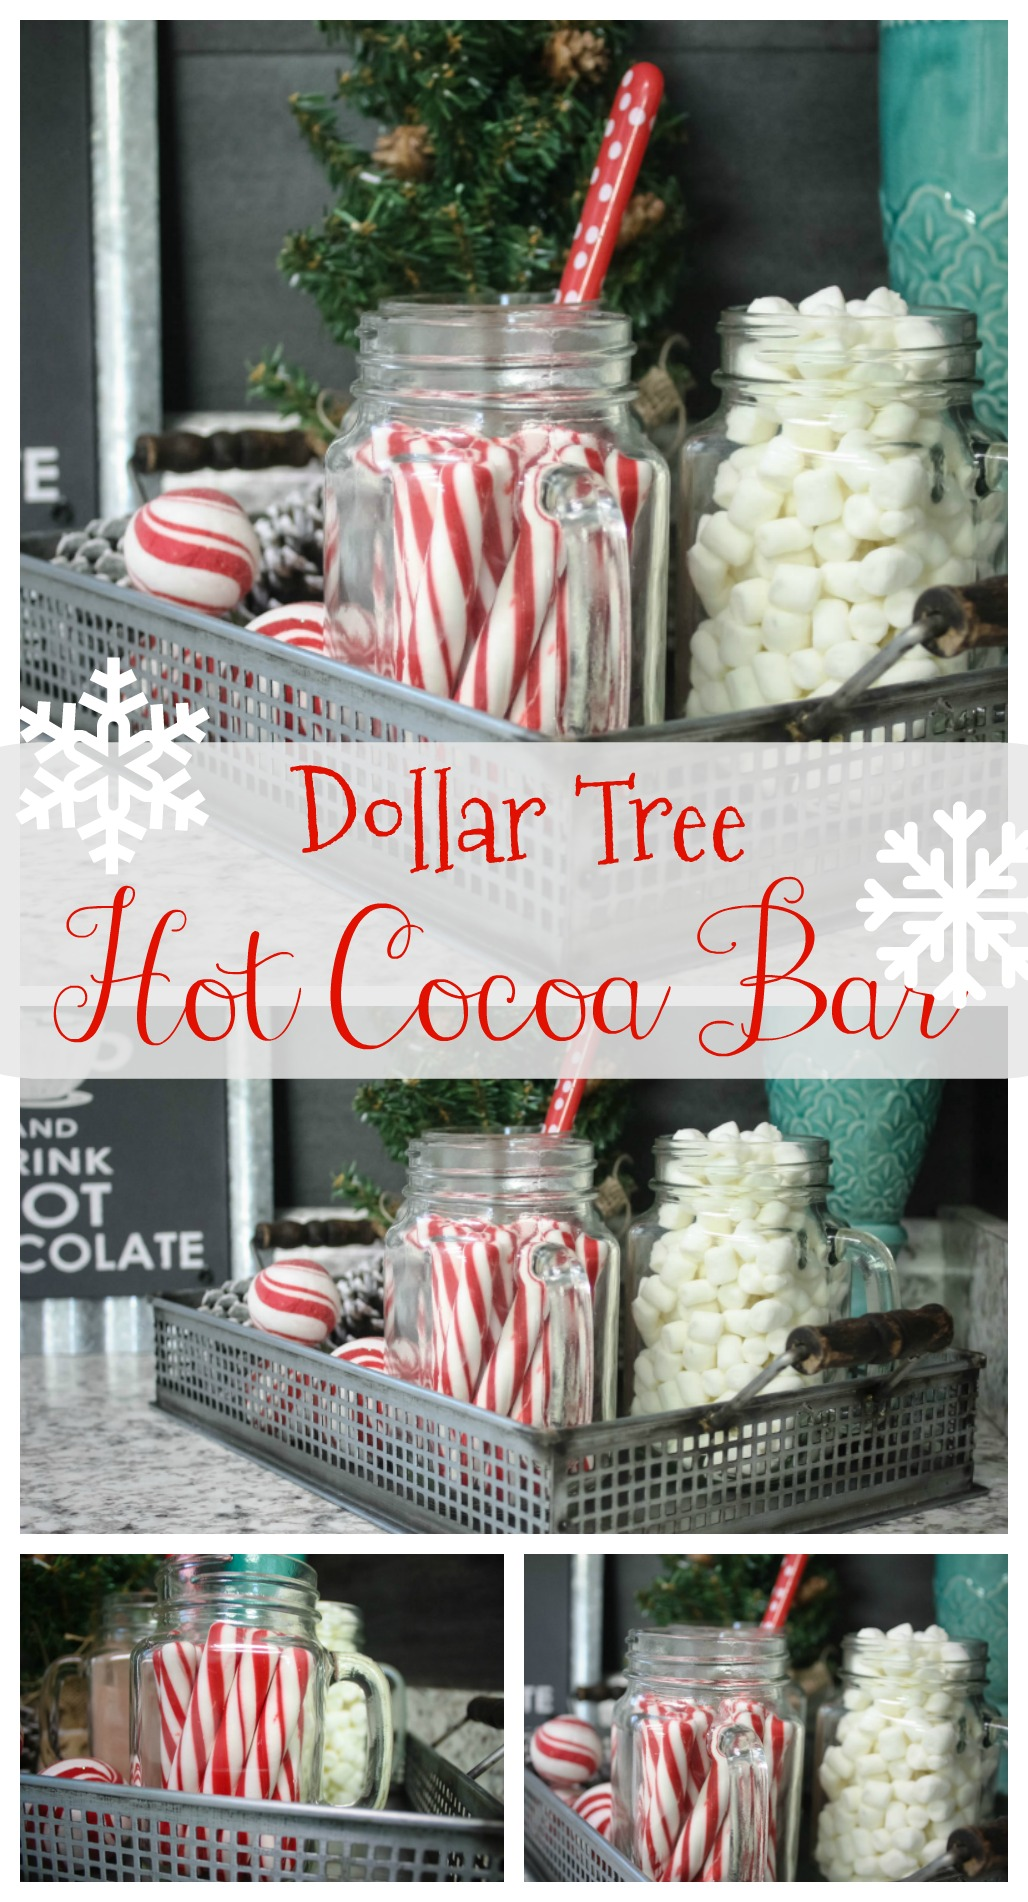 how to make a hot cocoa bar from dollar tree items you dont